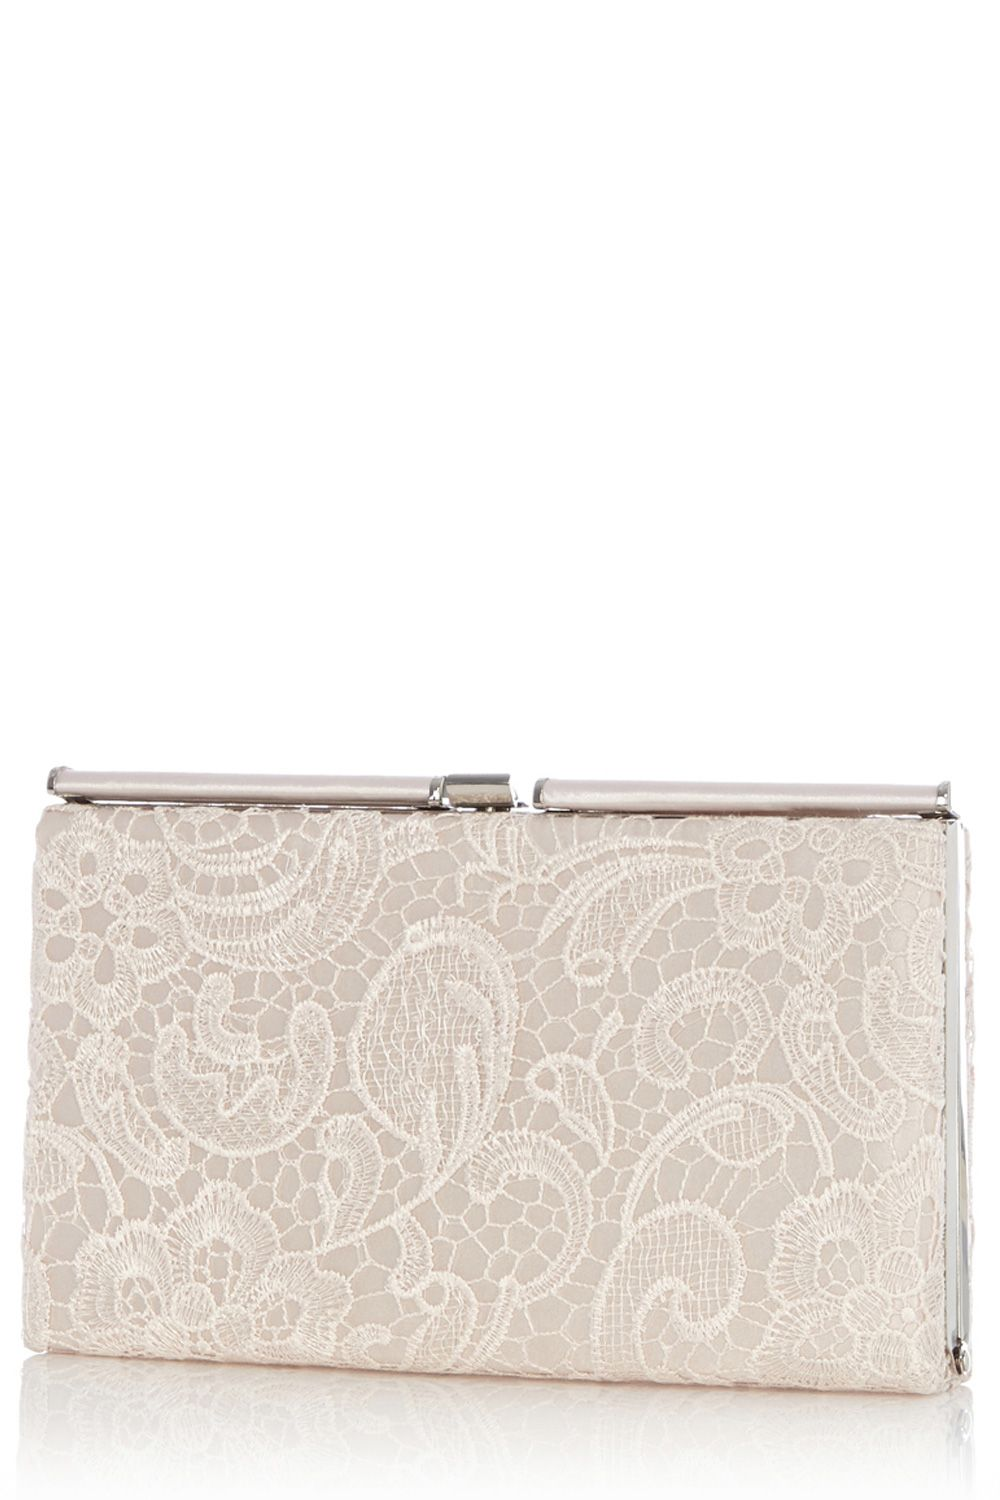 Lace roll top frame clutch